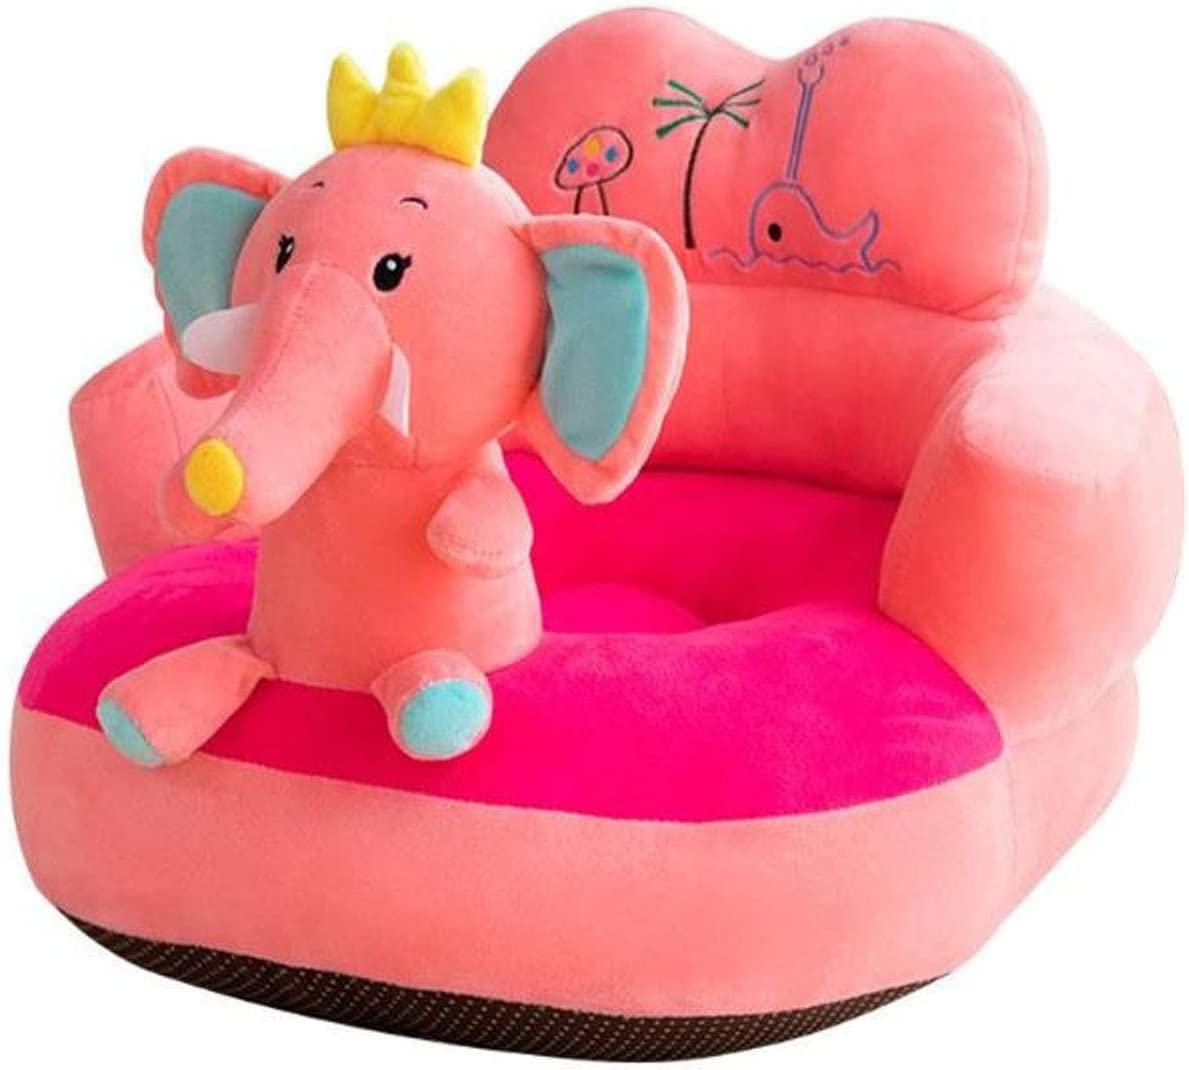 Baby Sofa Support Learning Seat Cover  Infant Toddler Nest Puff Without Cotton